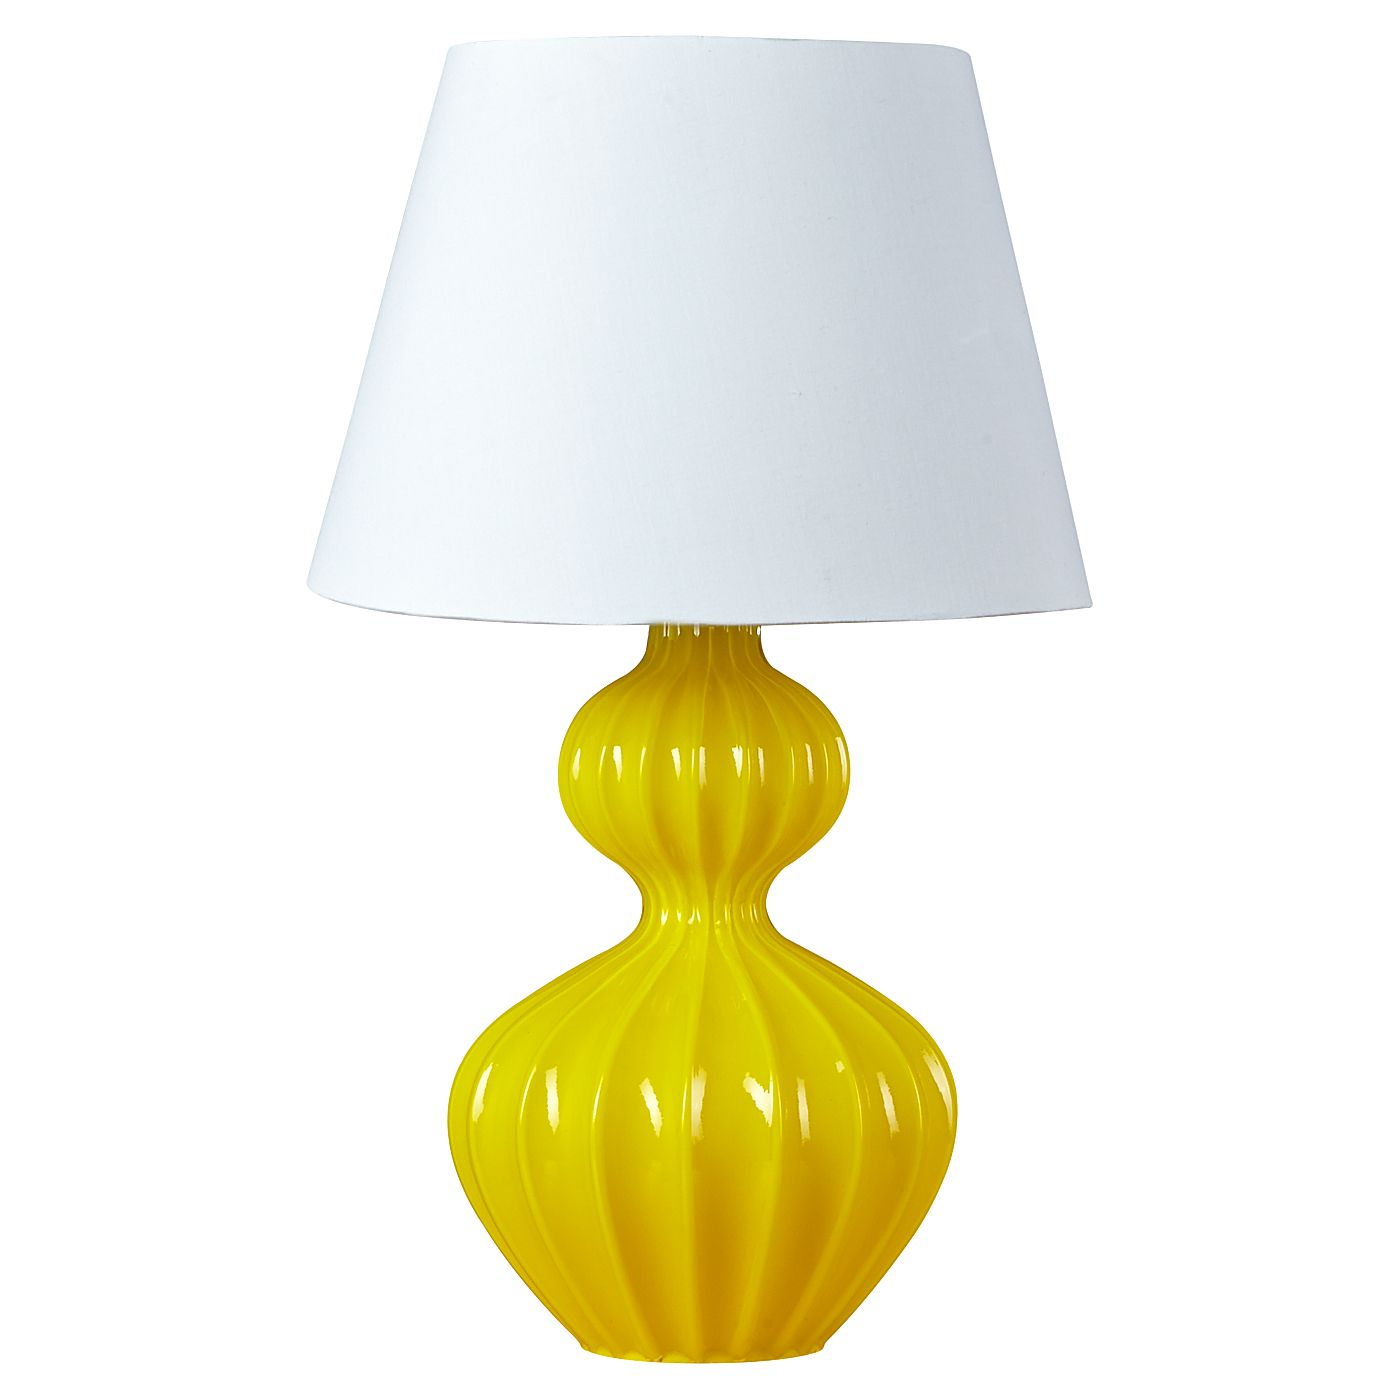 George Home Yellow Fluted Glass Lamp Lighting Asda Direct Lamp Inspiration Yellow Table Lamp Flute Glass